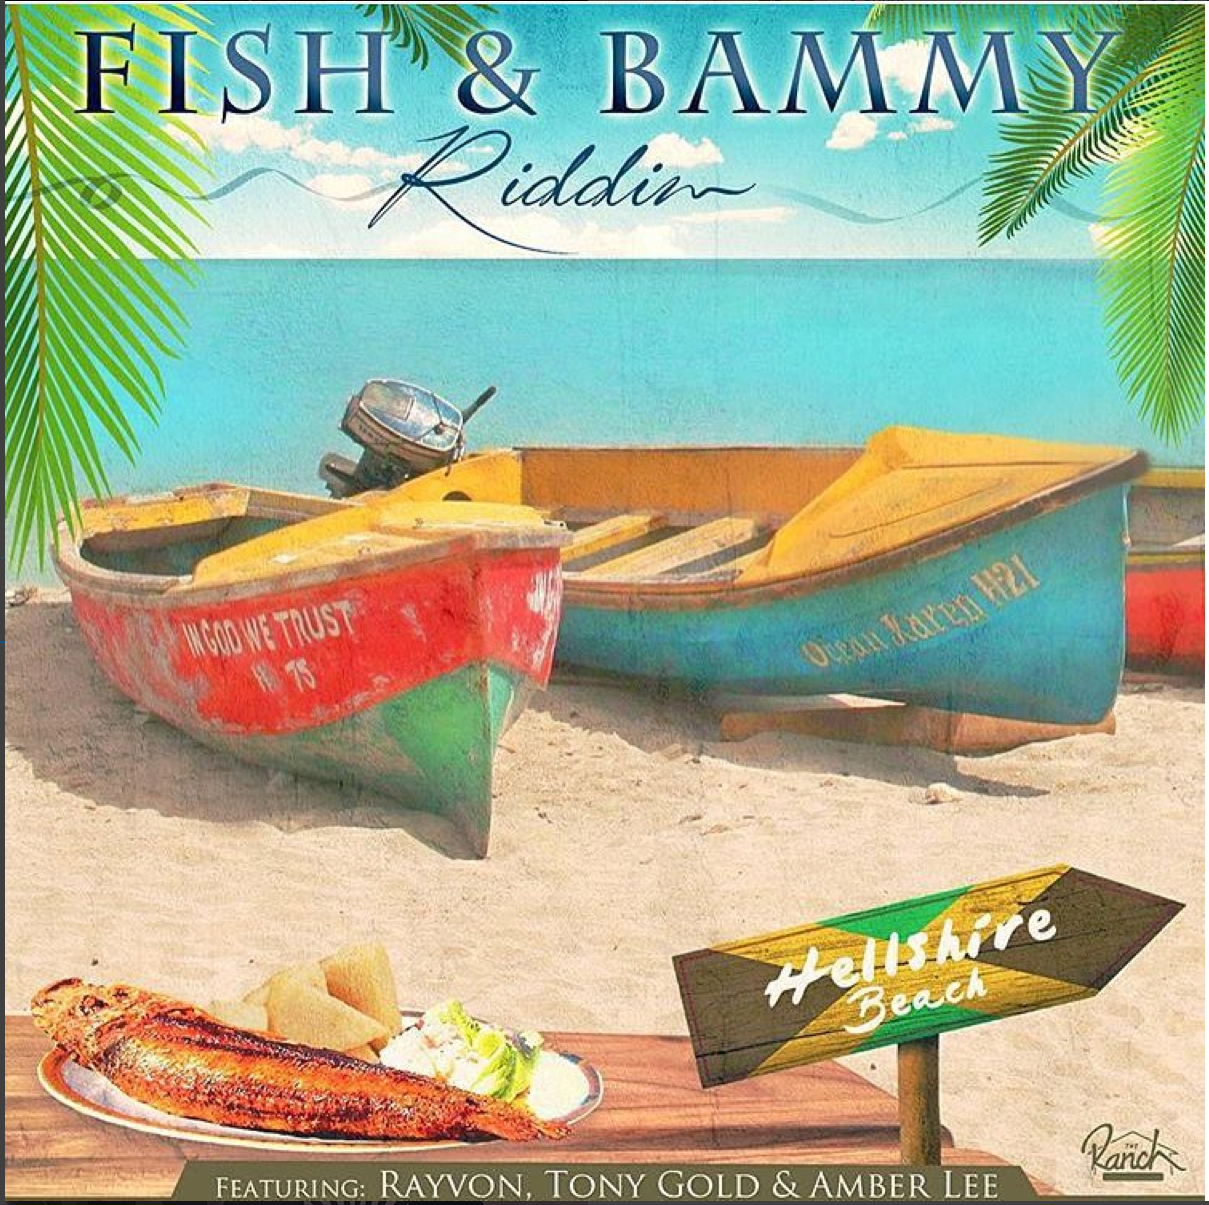 Fish & Bammy